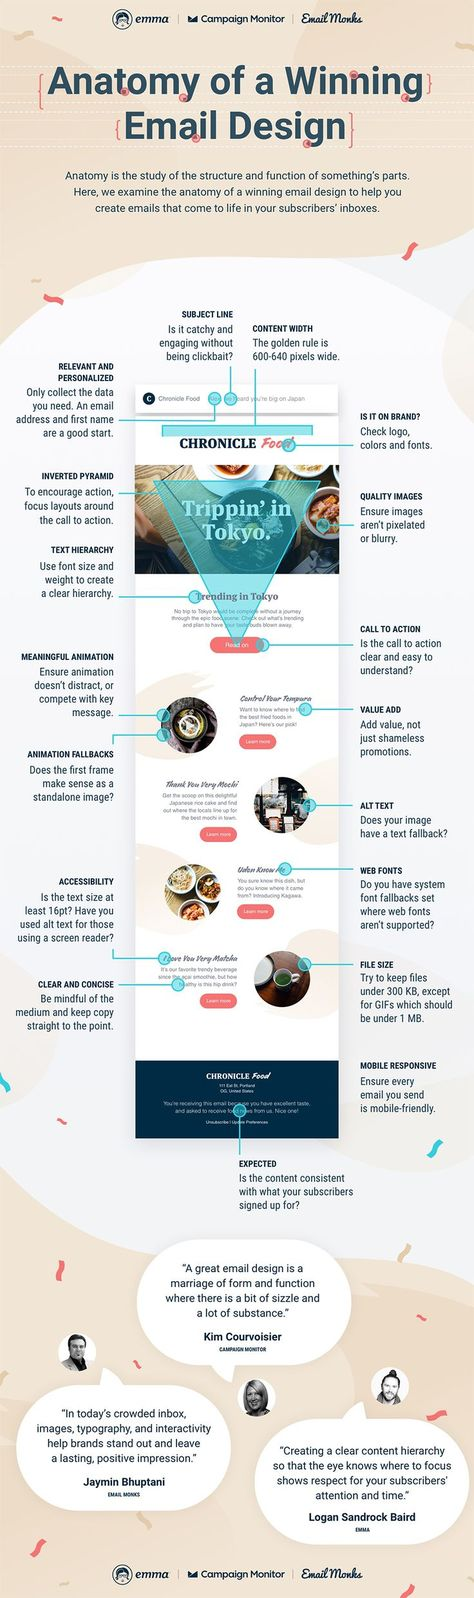 18 Email Design Tips for More Effective Email Marketing Campaigns - Infographic